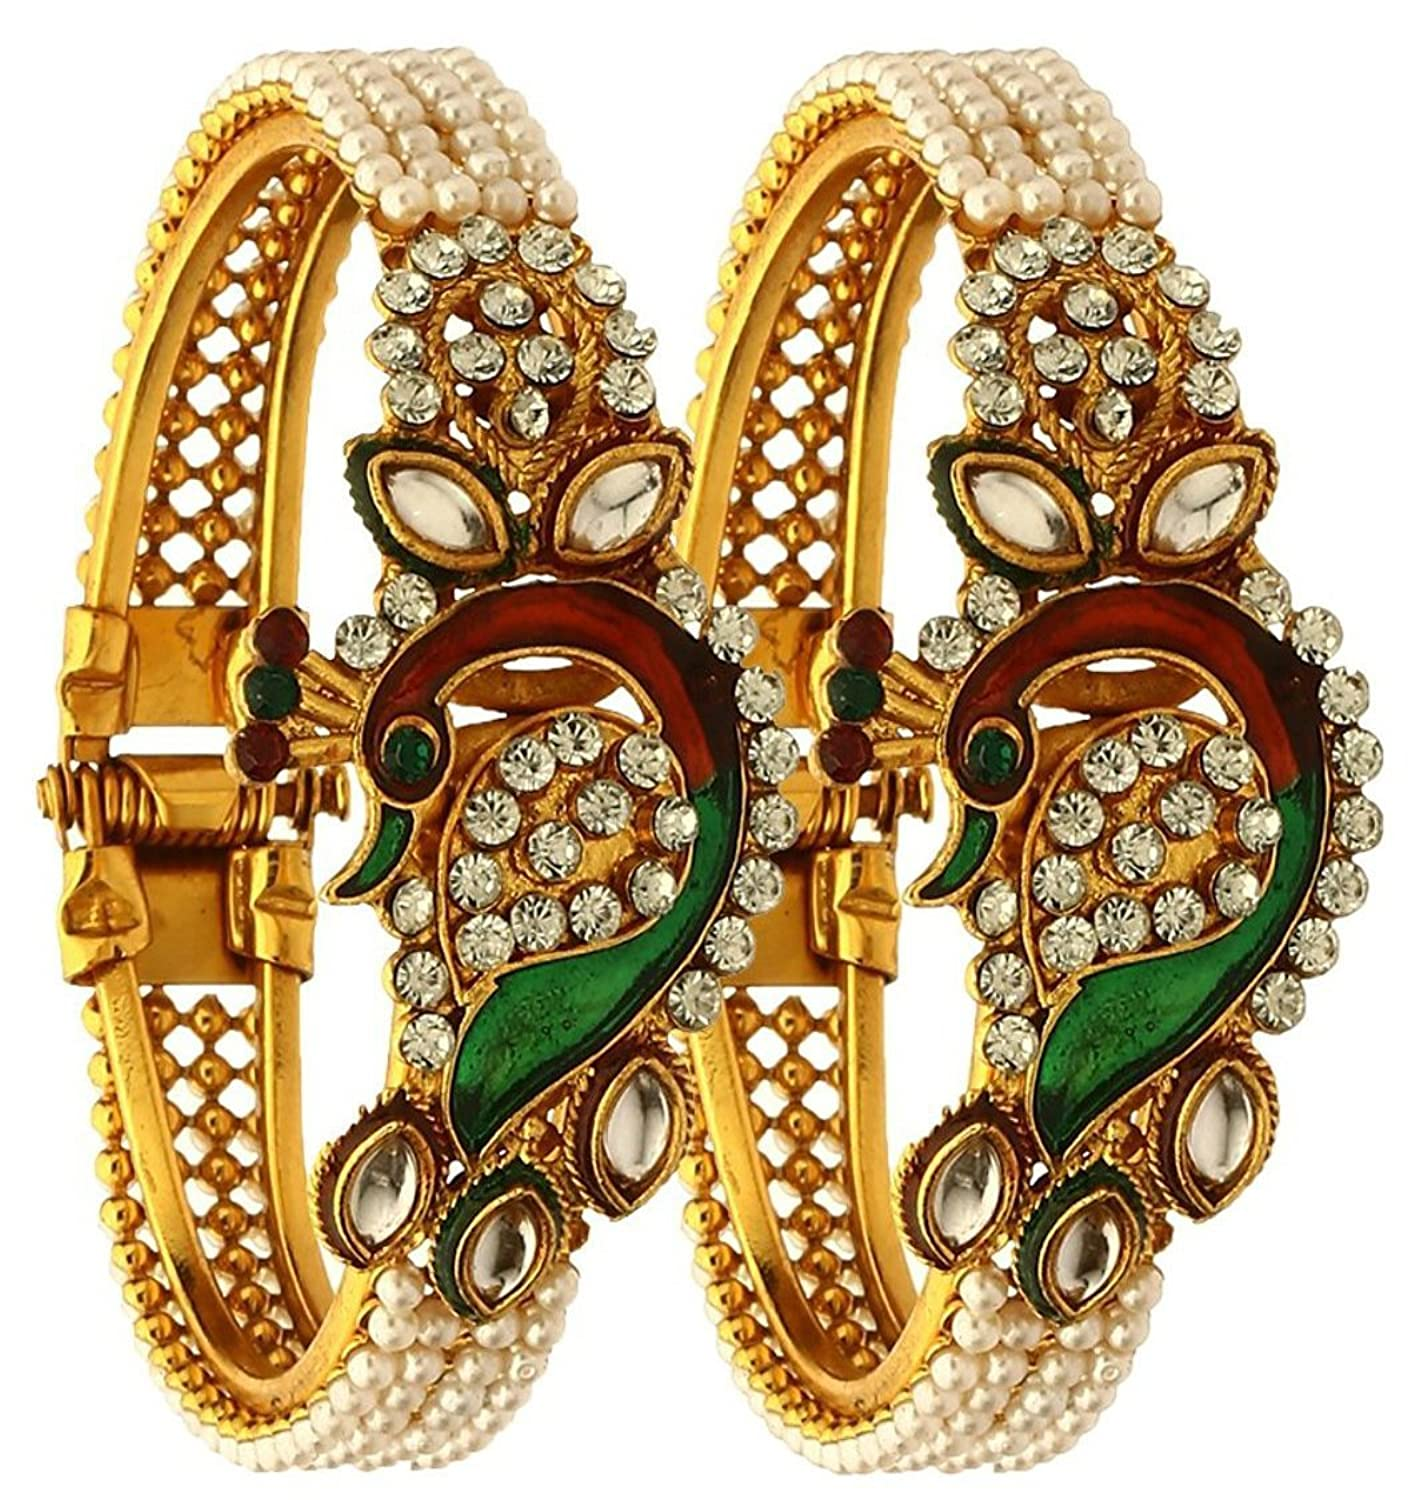 jewellers pgid gadgil designs online bracelets buy and pages s in pn bangles india ladies women